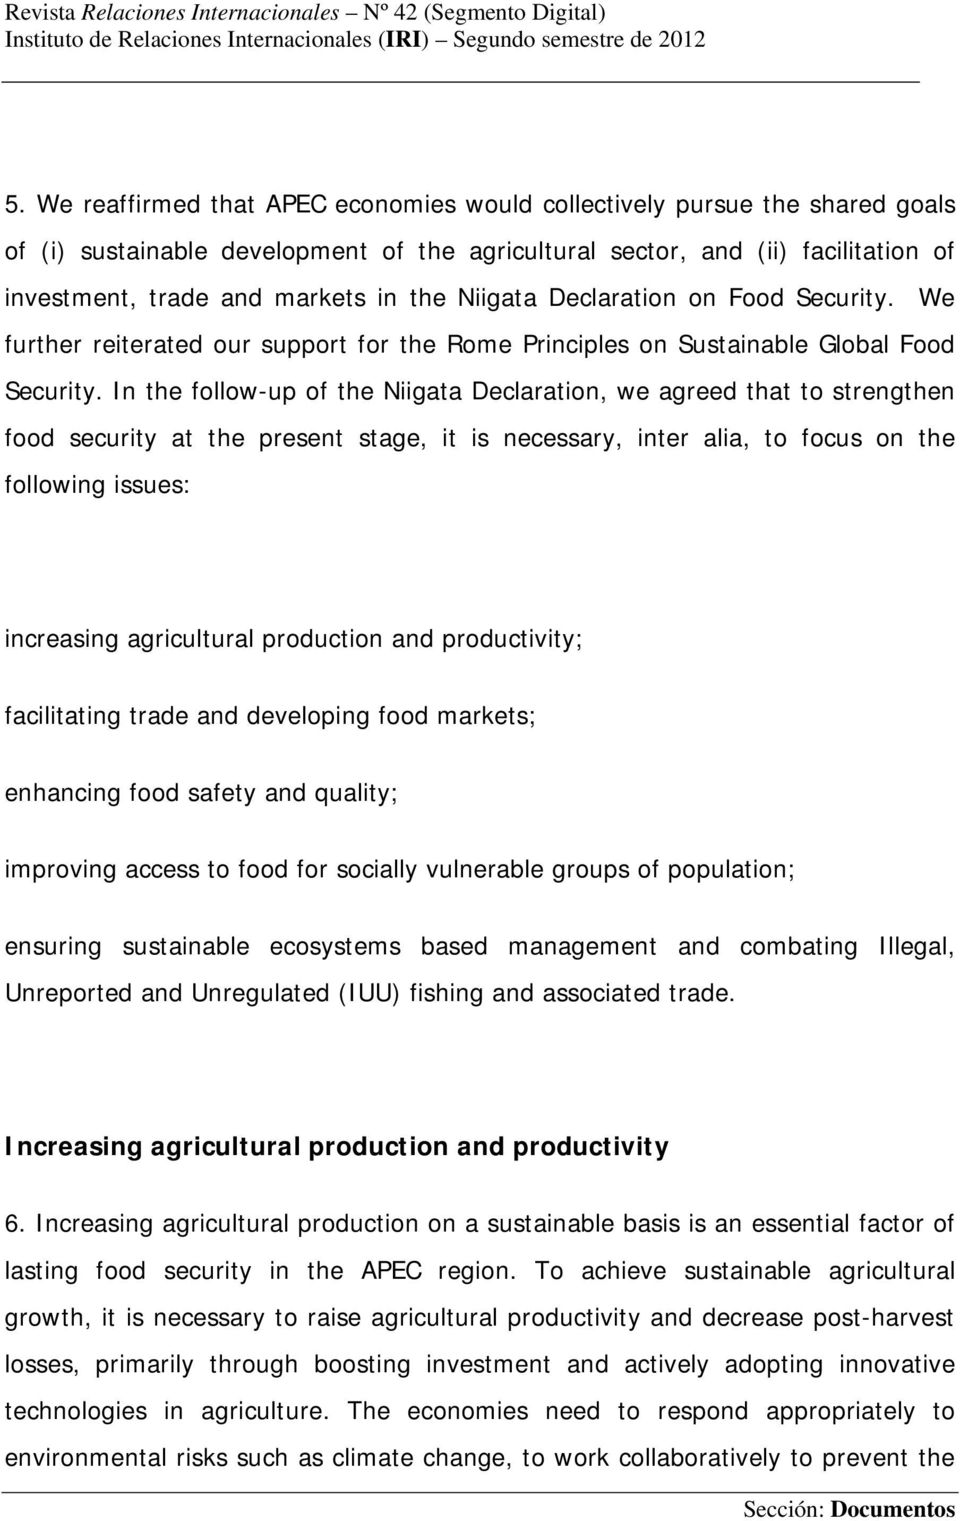 In the follow-up of the Niigata Declaration, we agreed that to strengthen food security at the present stage, it is necessary, inter alia, to focus on the following issues: increasing agricultural